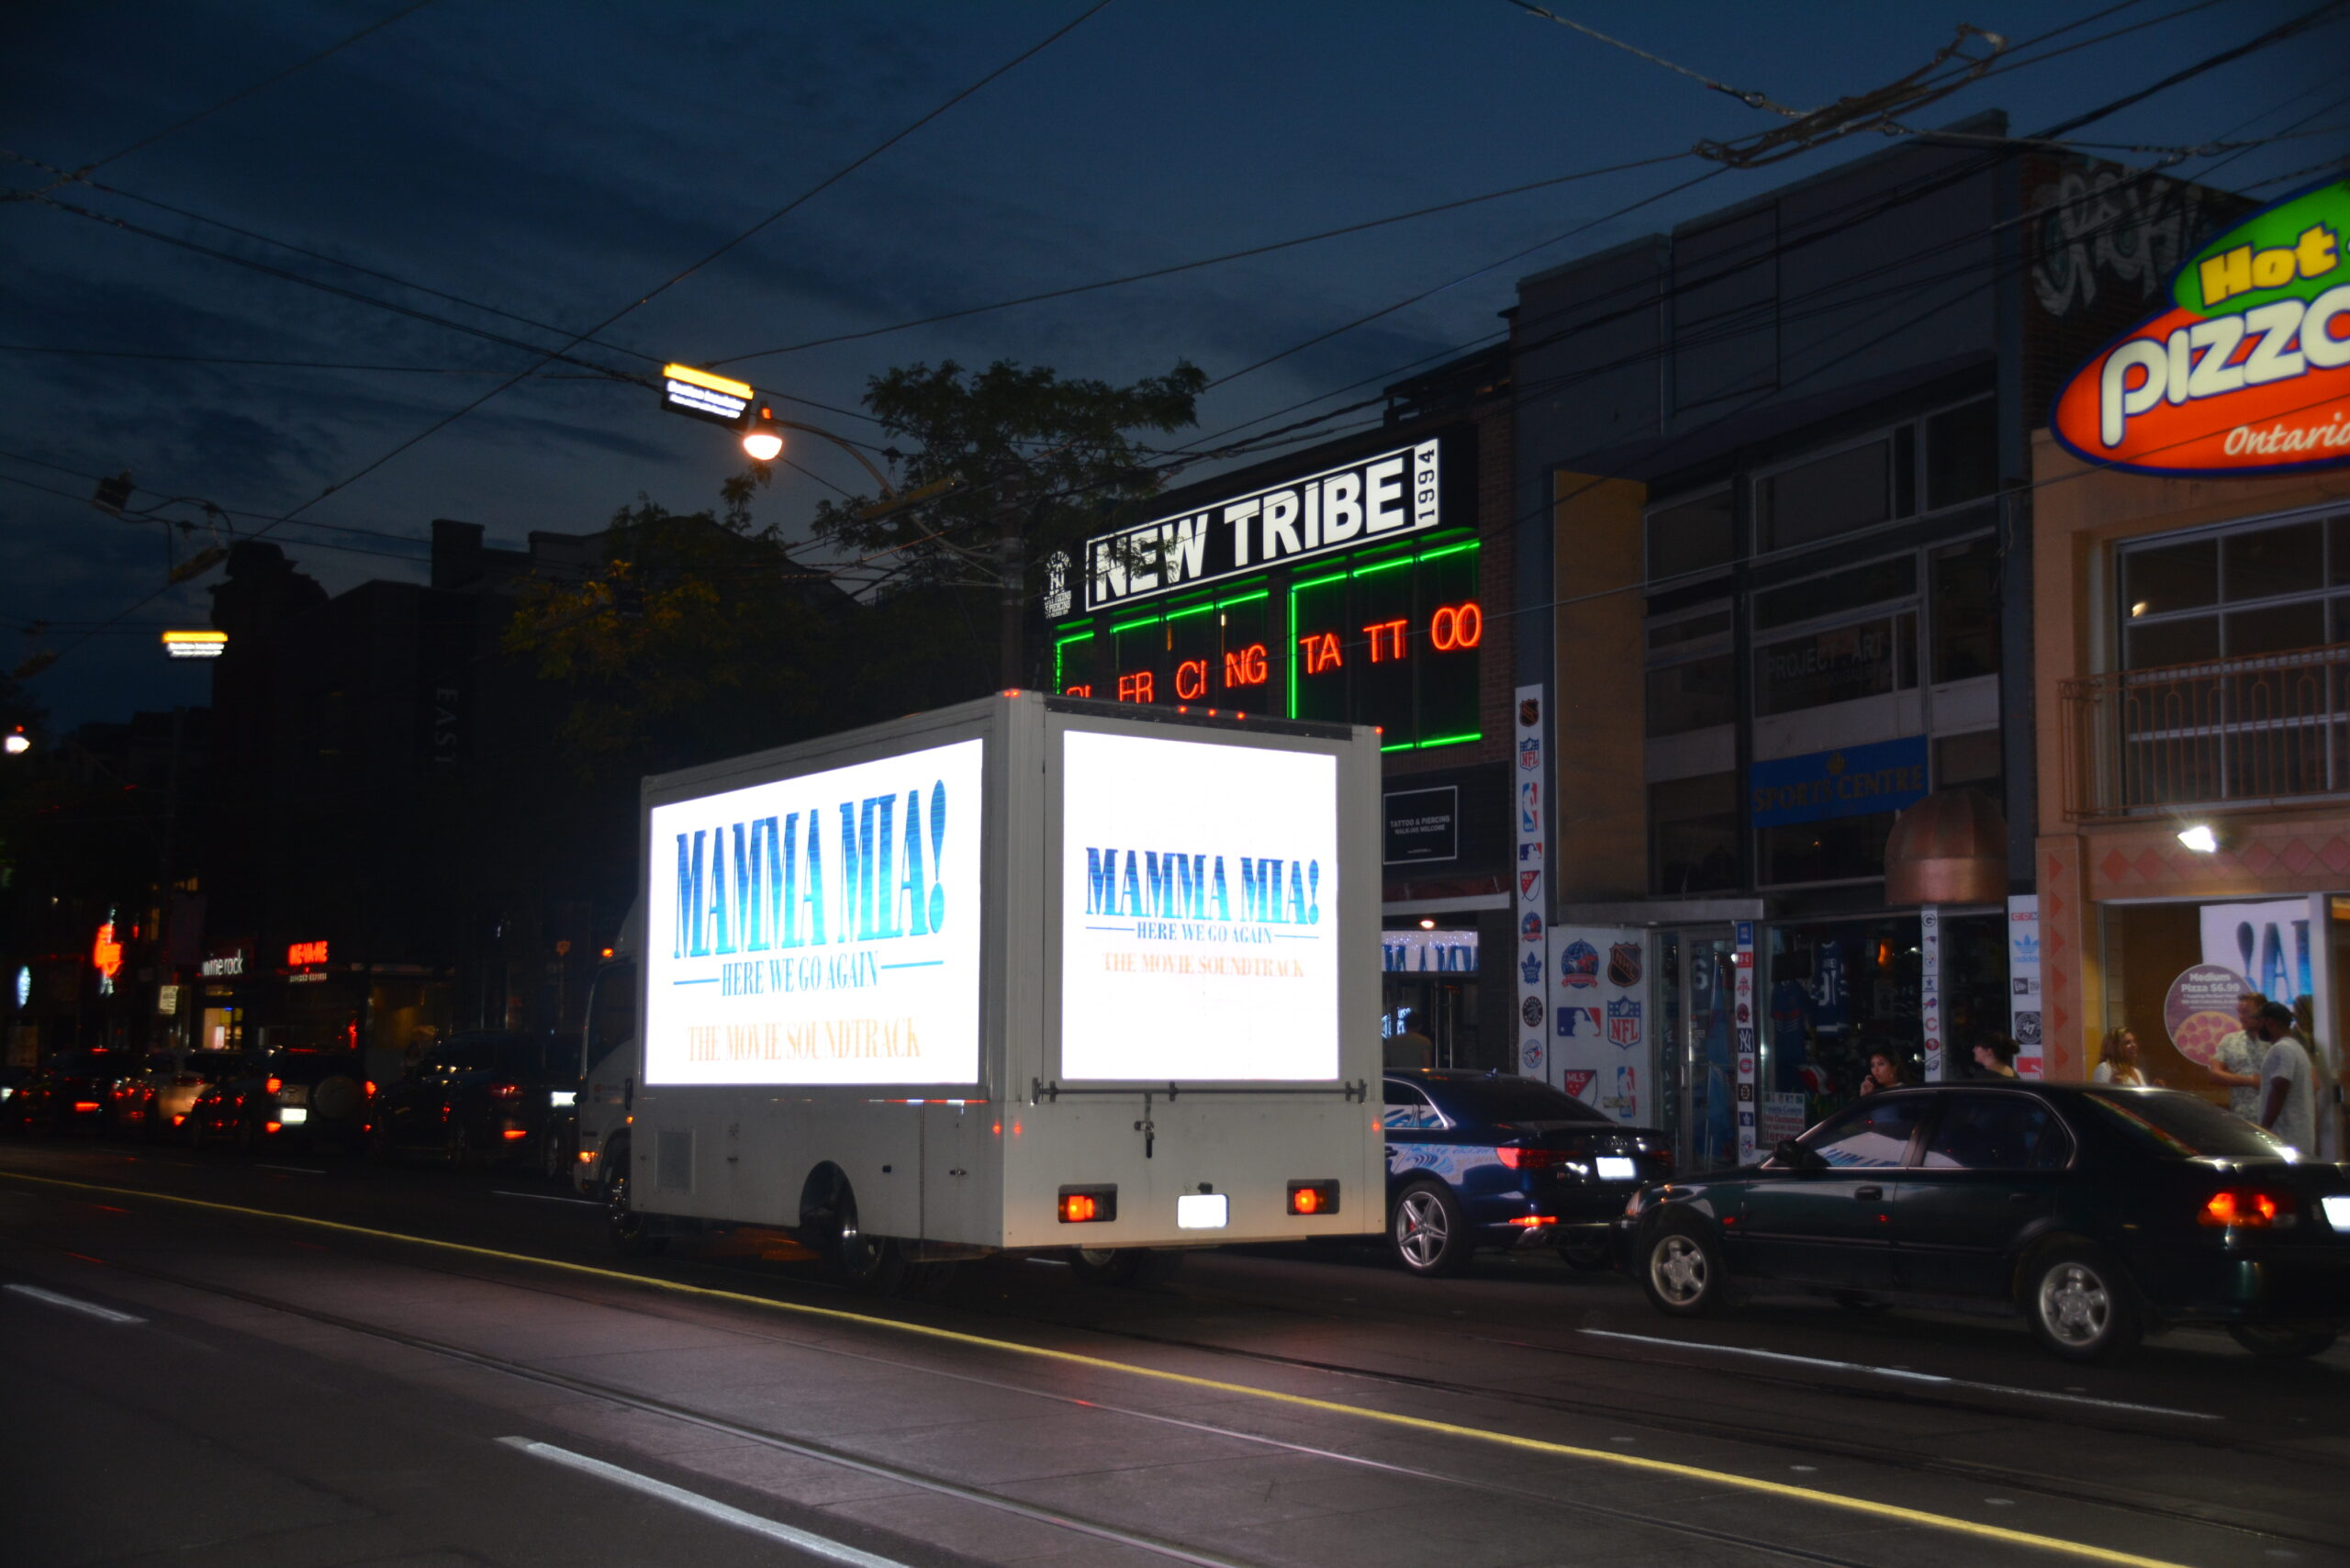 Digital Ad Truck: Mamma Mia Soundtrack